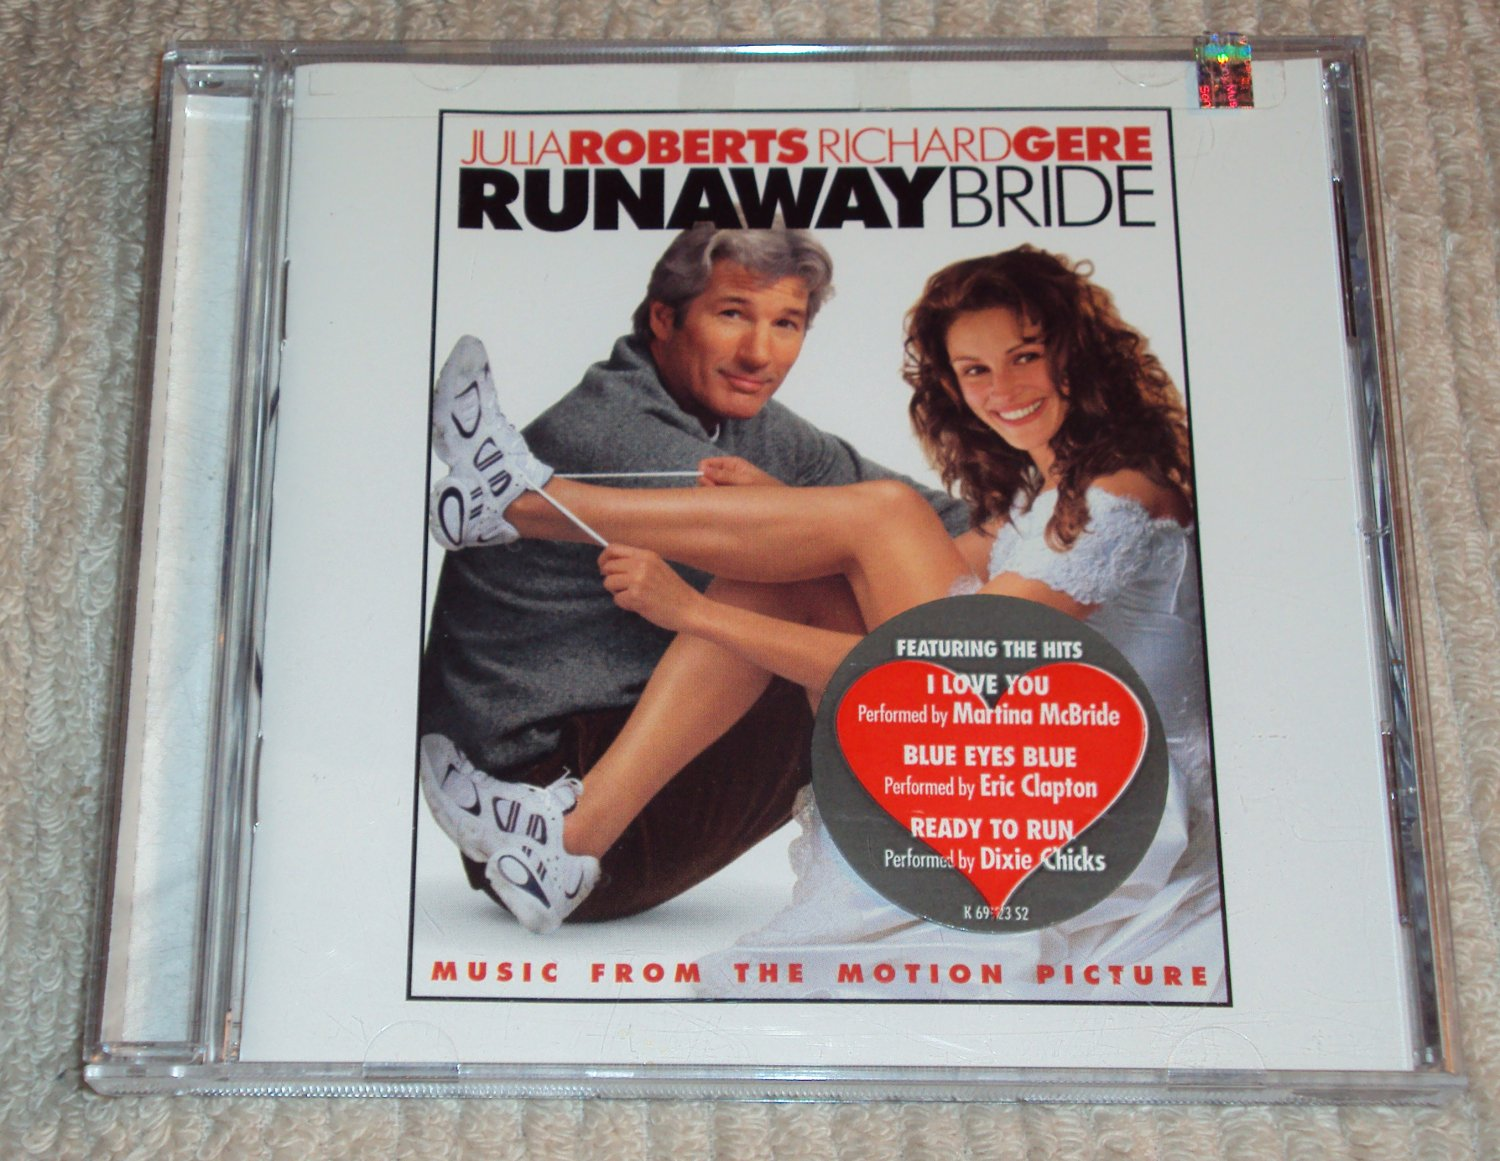 runaway bride soundtrack cd u2 billy joel hall amp oates